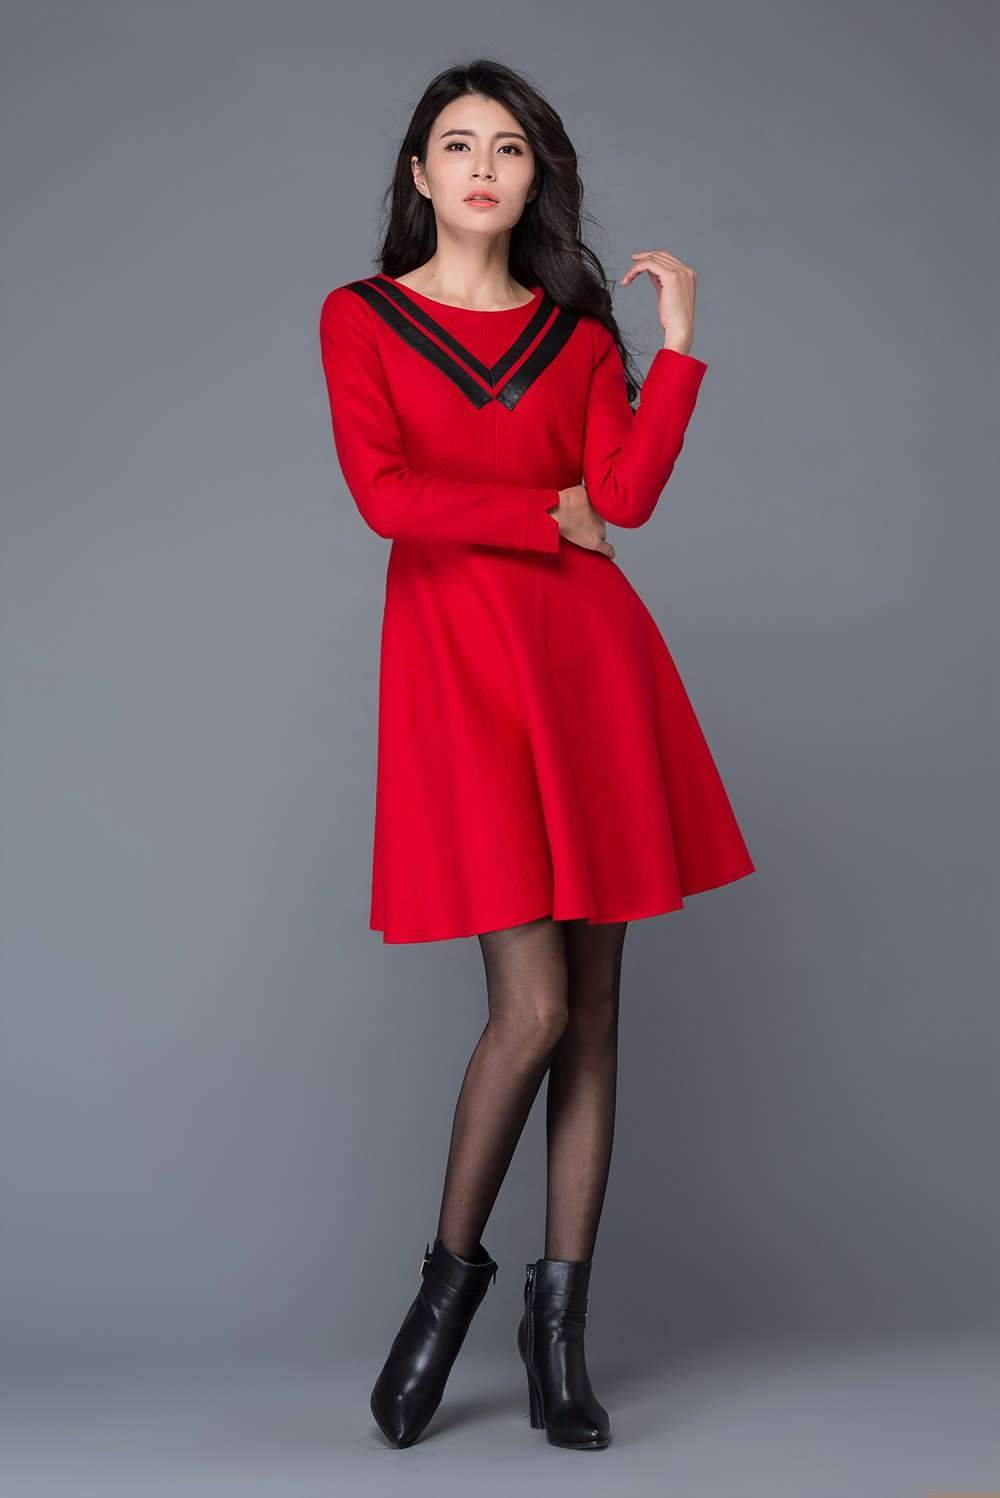 Red wool dress, Womens dresses for winter, girls dresses, winter dress, mini dress, warm winter dress, black PU collar dress C1030